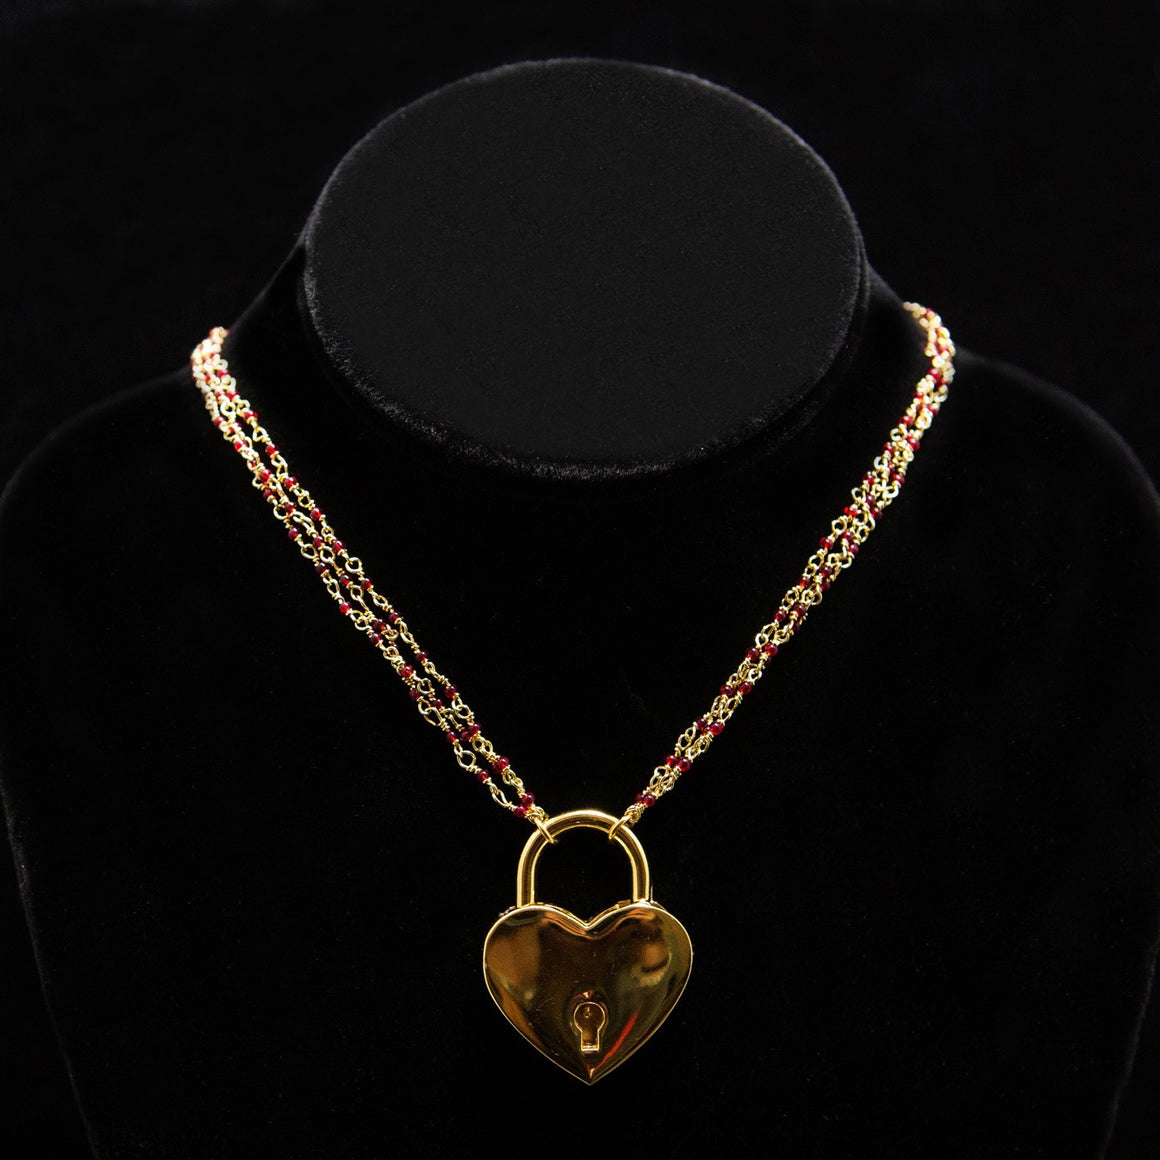 Day Necklace: Triple Gold Chain with Ruby-Red Beads and Large Heart Lock